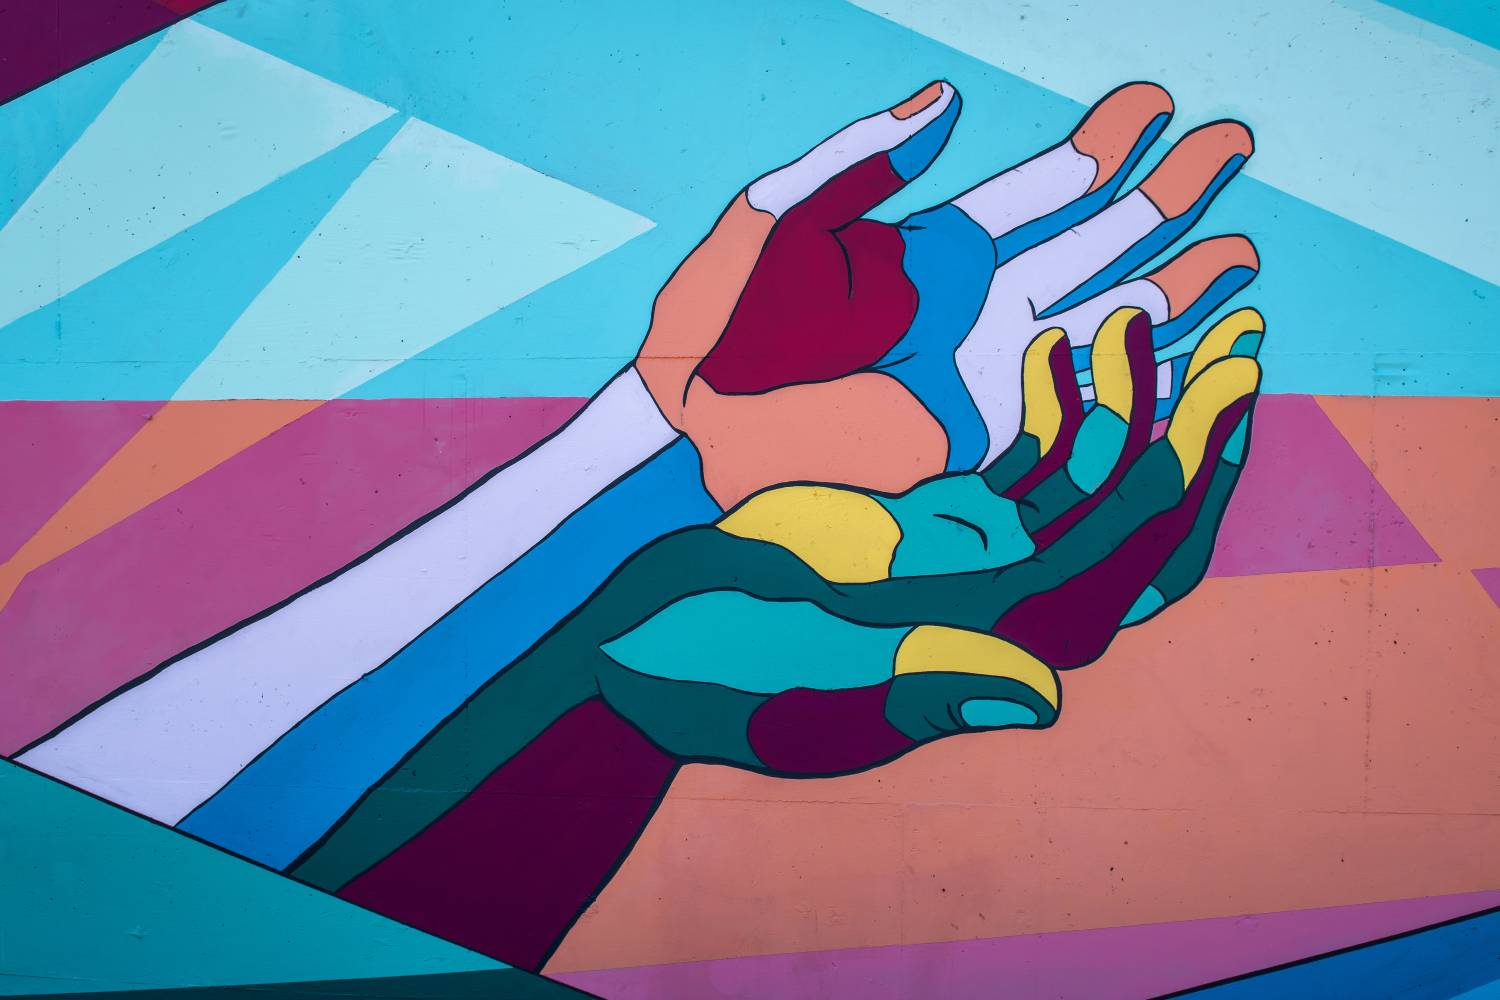 colorful graffiti with two hands